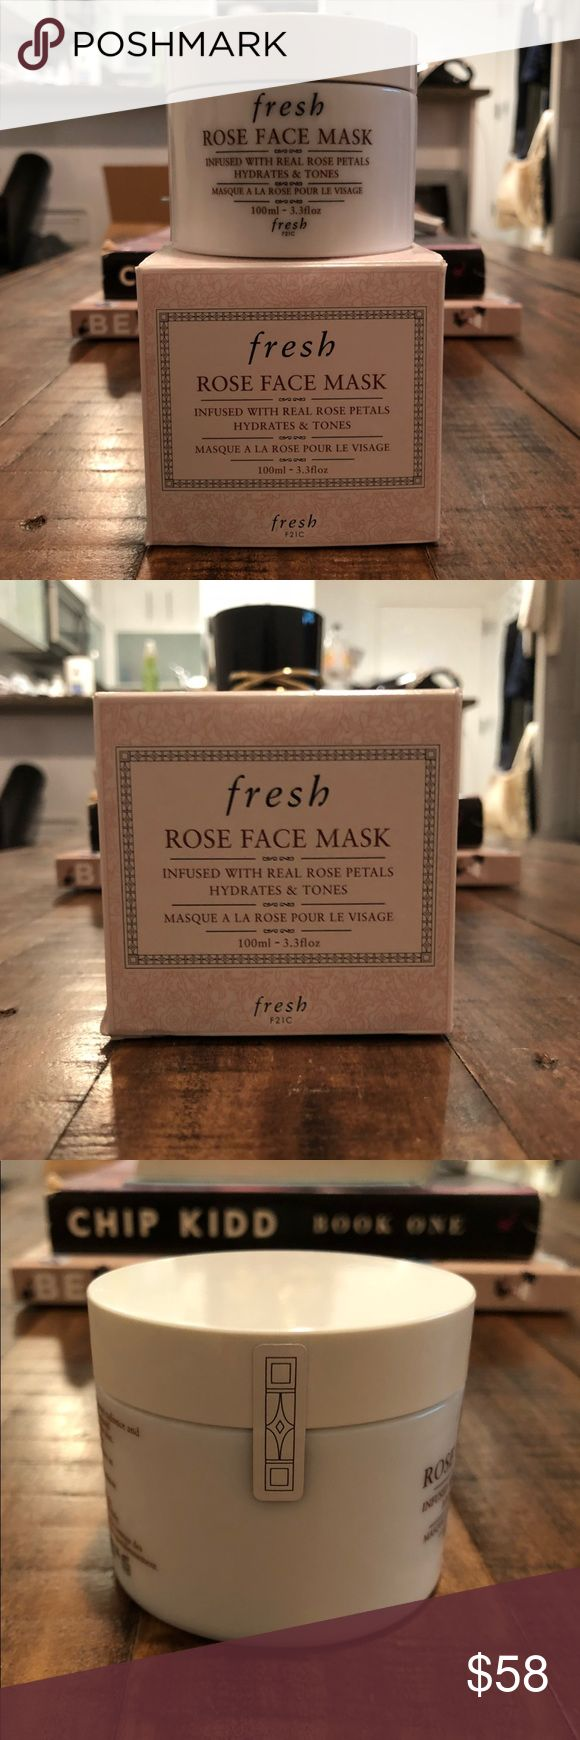 NEW FRESH Rose Face Mask - Full Size & Sealed! NEW FRESH Rose Face Mask - Full Size & Sealed! Comes with 2 deluxe beauty samples!  A unique gel formula infused with real rose petals and pure rosewater that hydrates and tones the complexion.  Rose Face Mask hydrates and tones the complexion to restore radiance and suppleness to all skin types. The unique, cooling gel formula is infused with real rose petals that literally melt into the skin.  Purchase comes with deluxe beauty samples in…